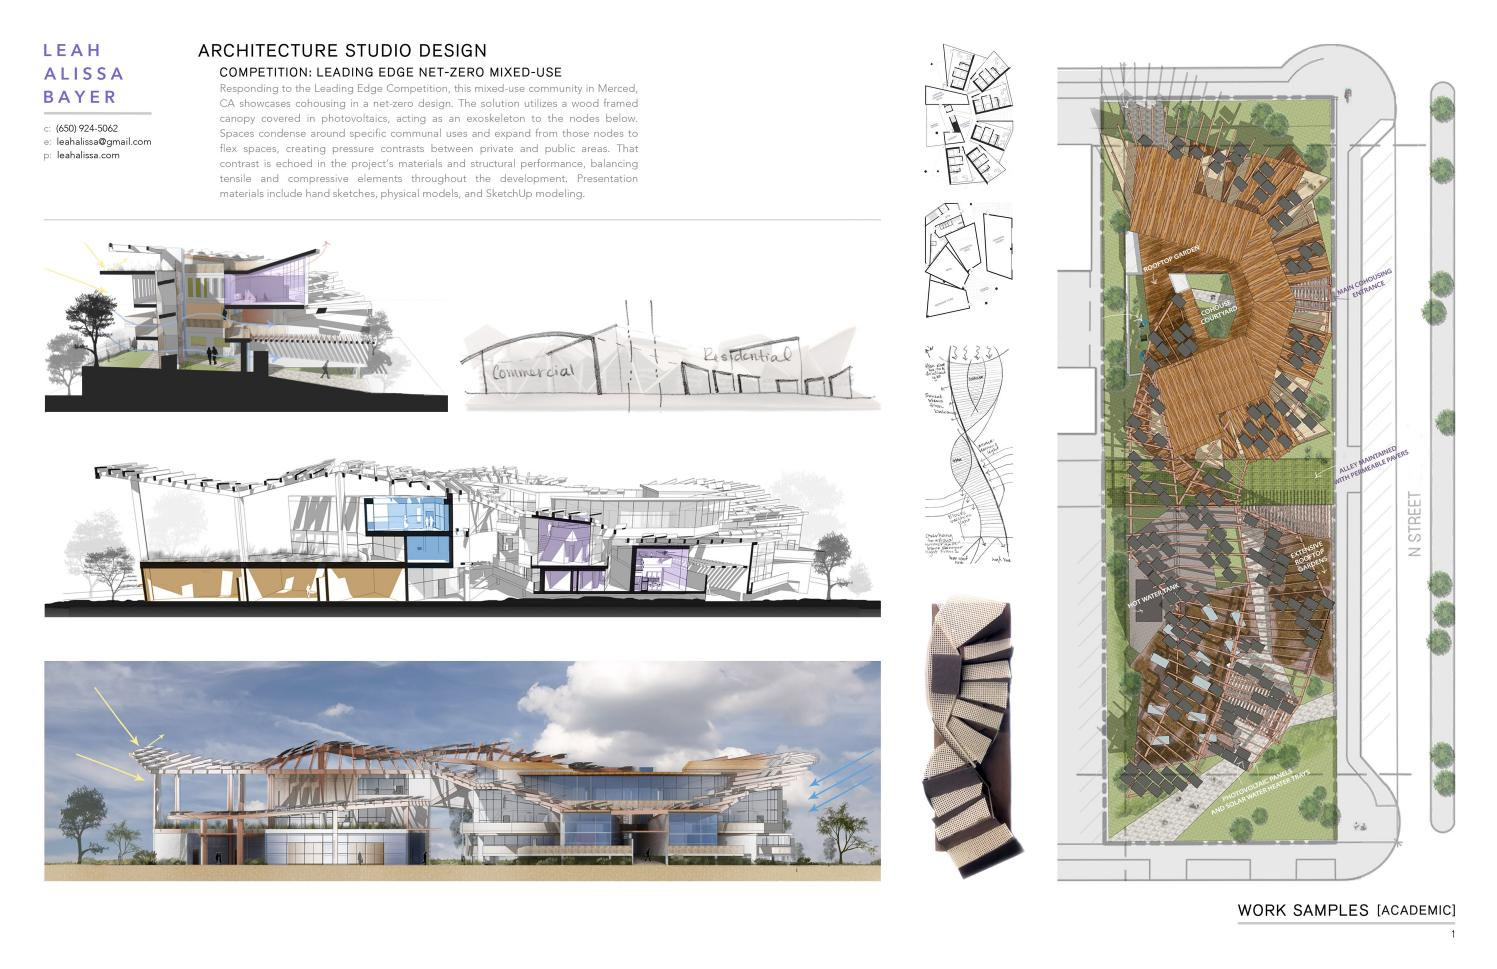 2017 architecture portfolio sample of work by leah for Architectural design sample